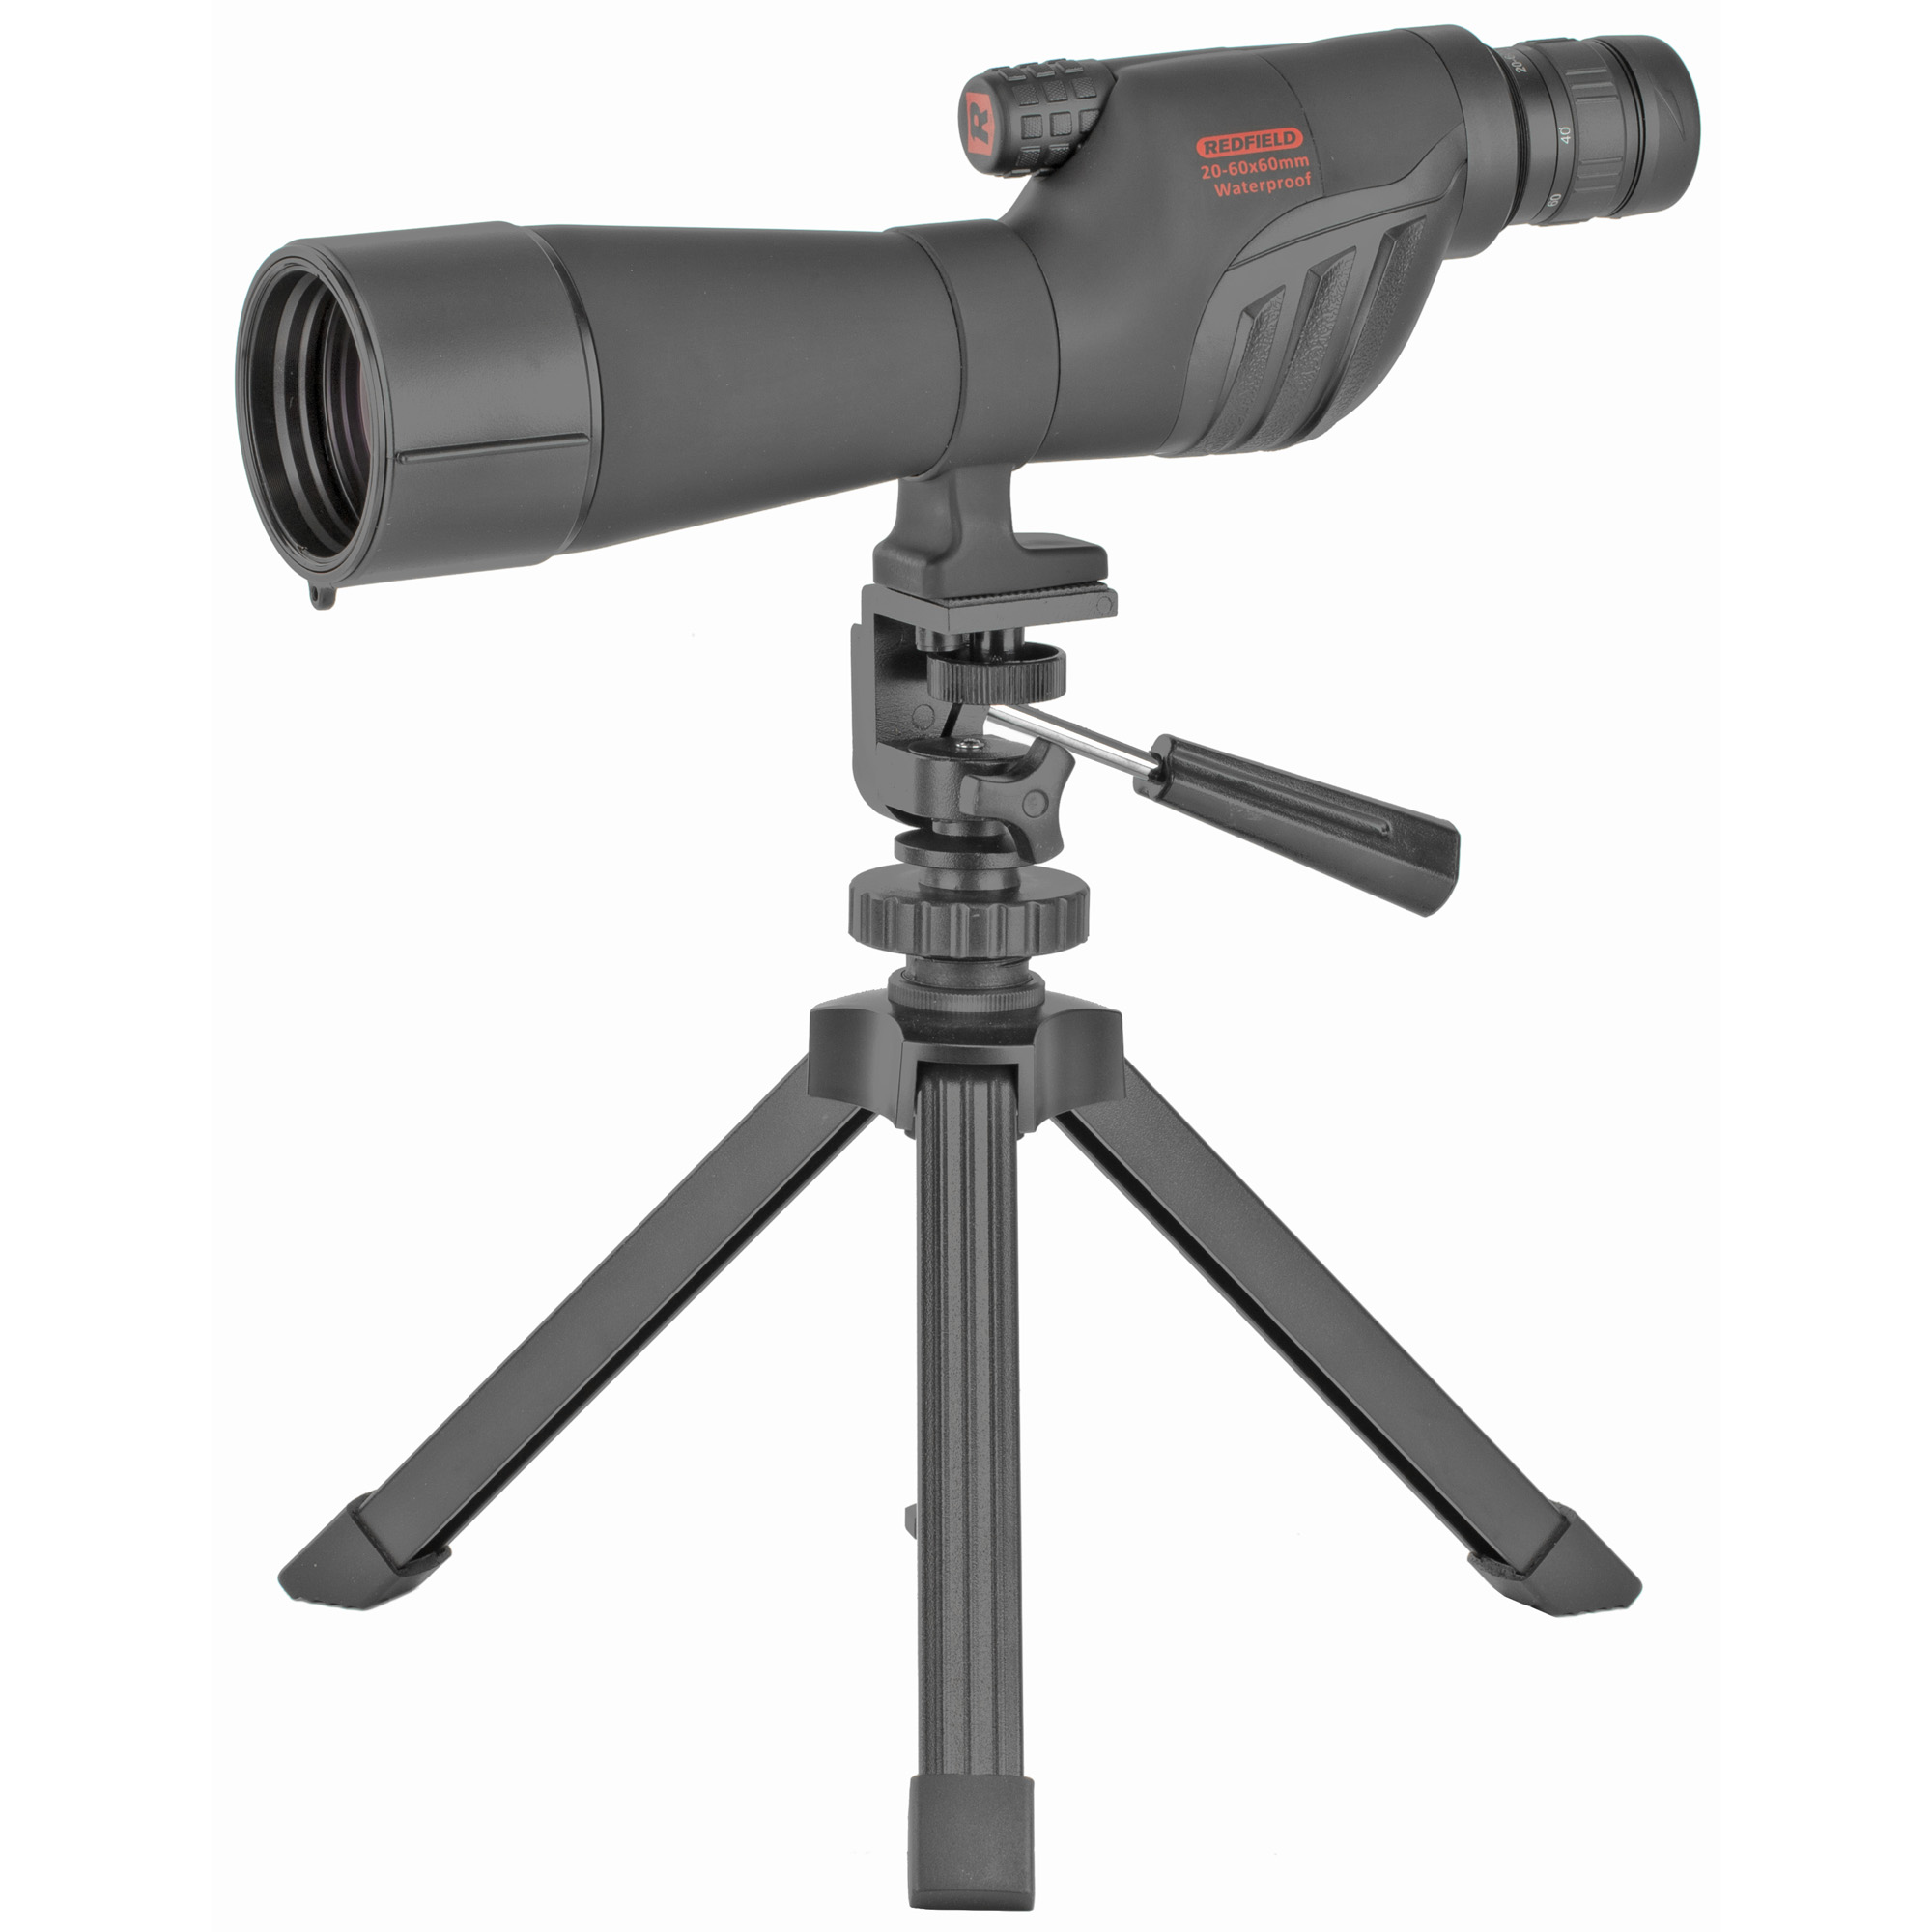 """Rampage(R) is a full-sized"""" fully featured spotting scope that opens up a world of possibilities with a price tag that anyone can afford. Bright"""" clear optics and rugged Redfield dependability make it the perfect choice for observation"""" at the range or on the hunt."""